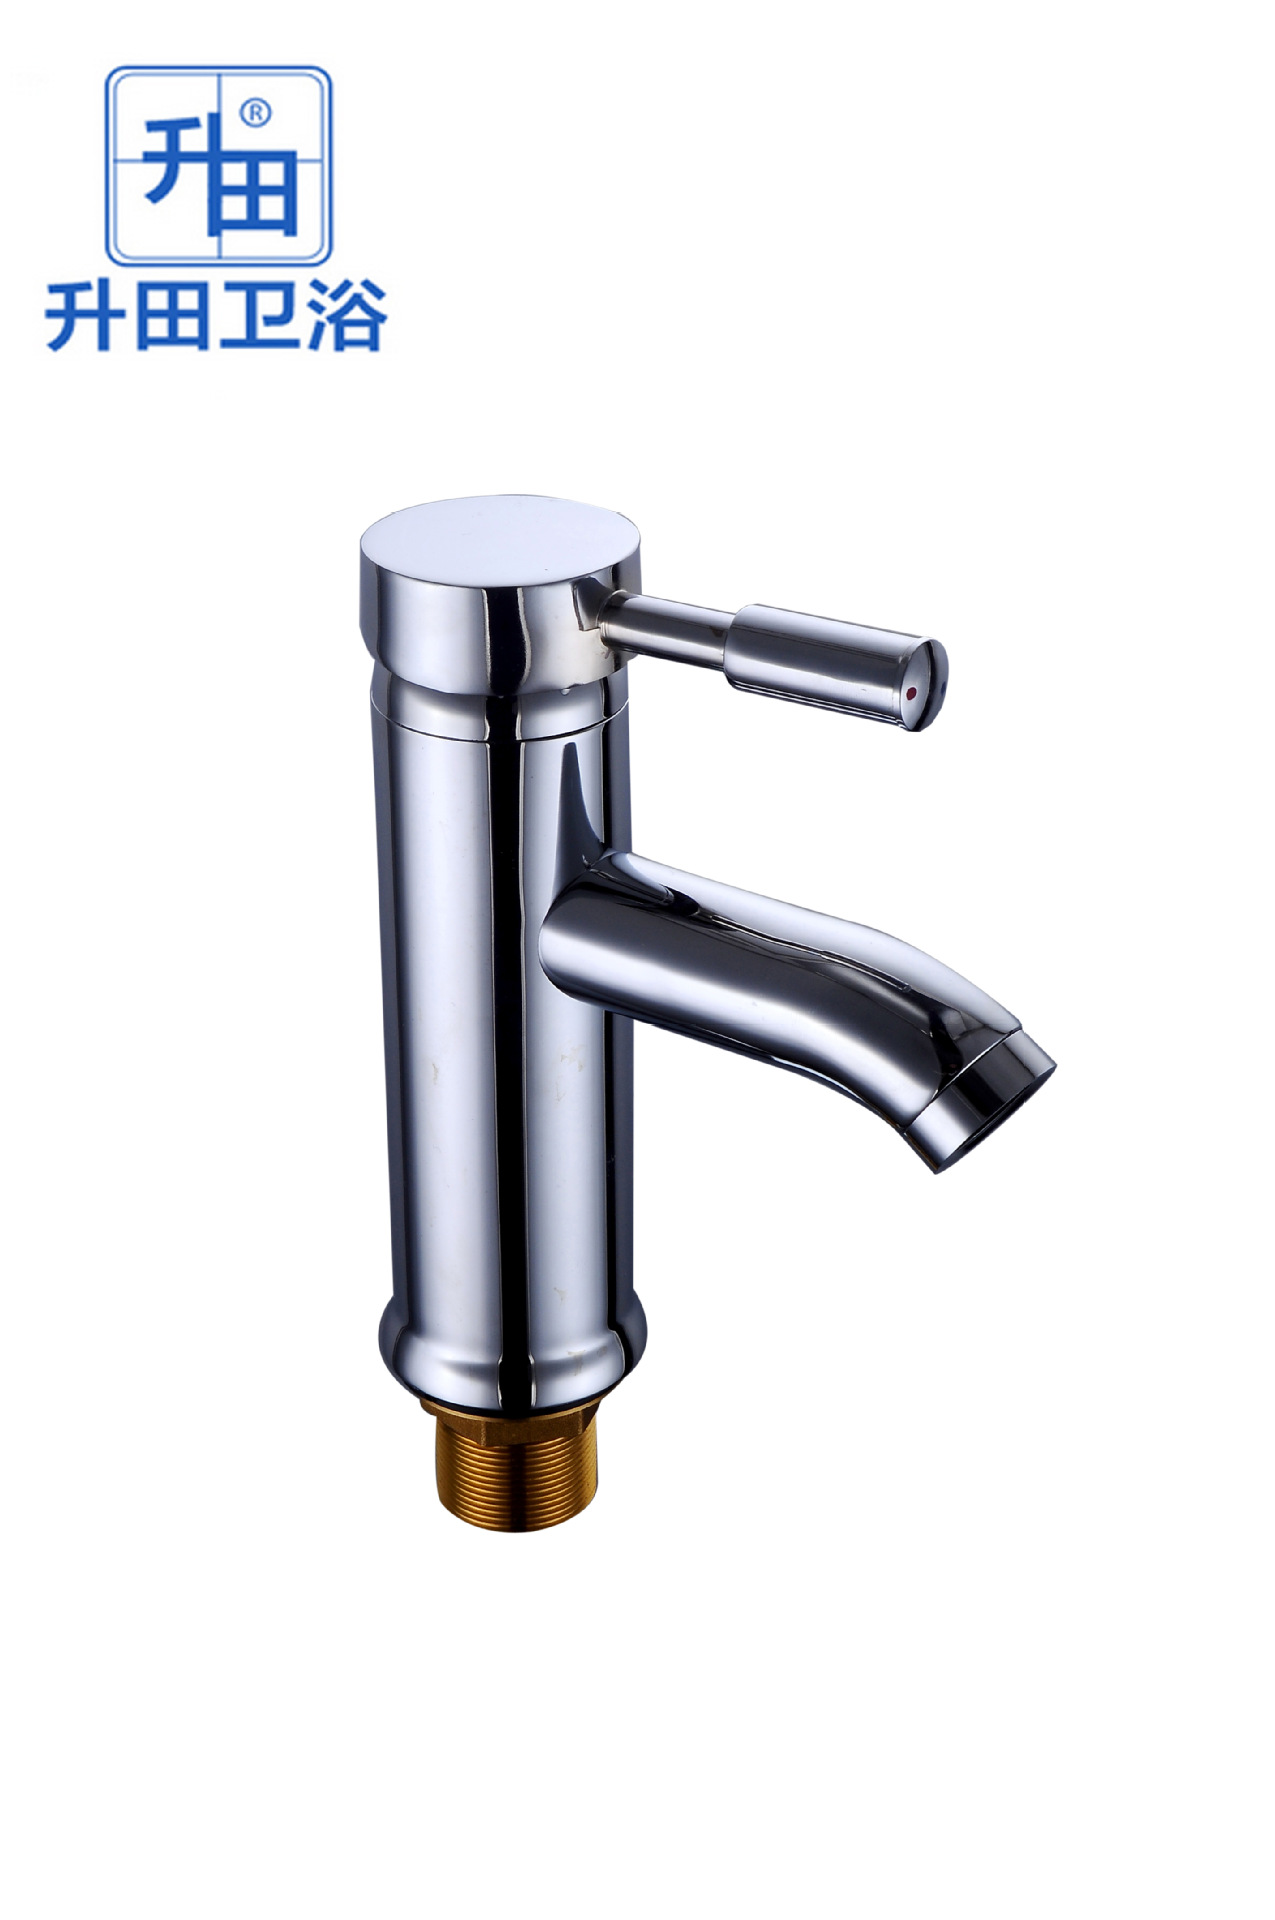 Faucets bathroom mixer basin faucet style ersity in basin faucets